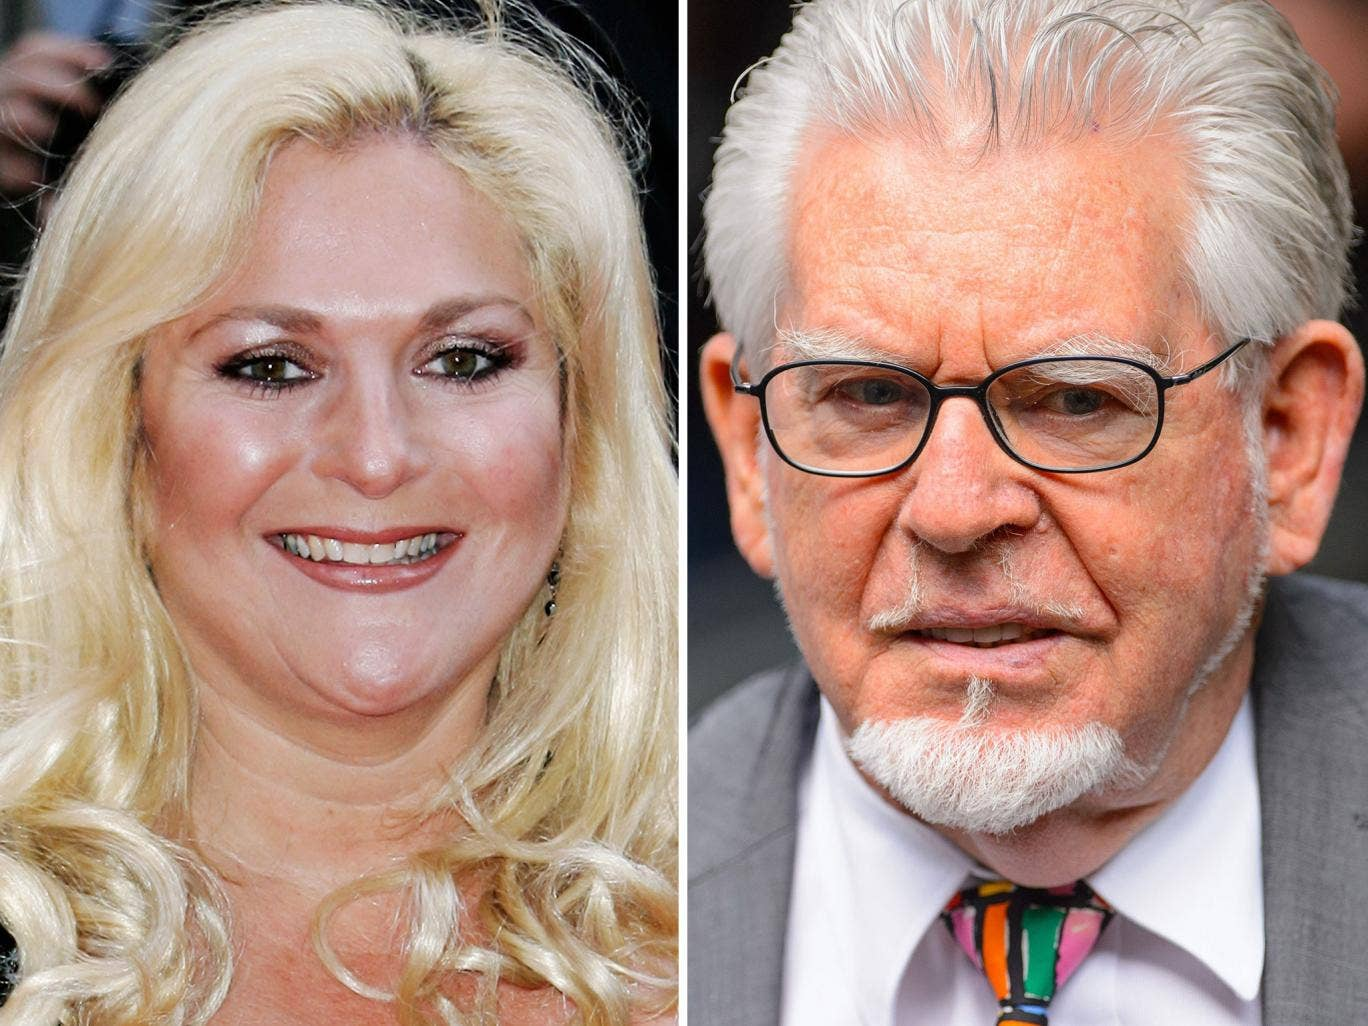 Vanessa Feltz at the 2006 Bafta awards and Rolf Harris, as he arrived for sentencing at Southwark Crown Court last week